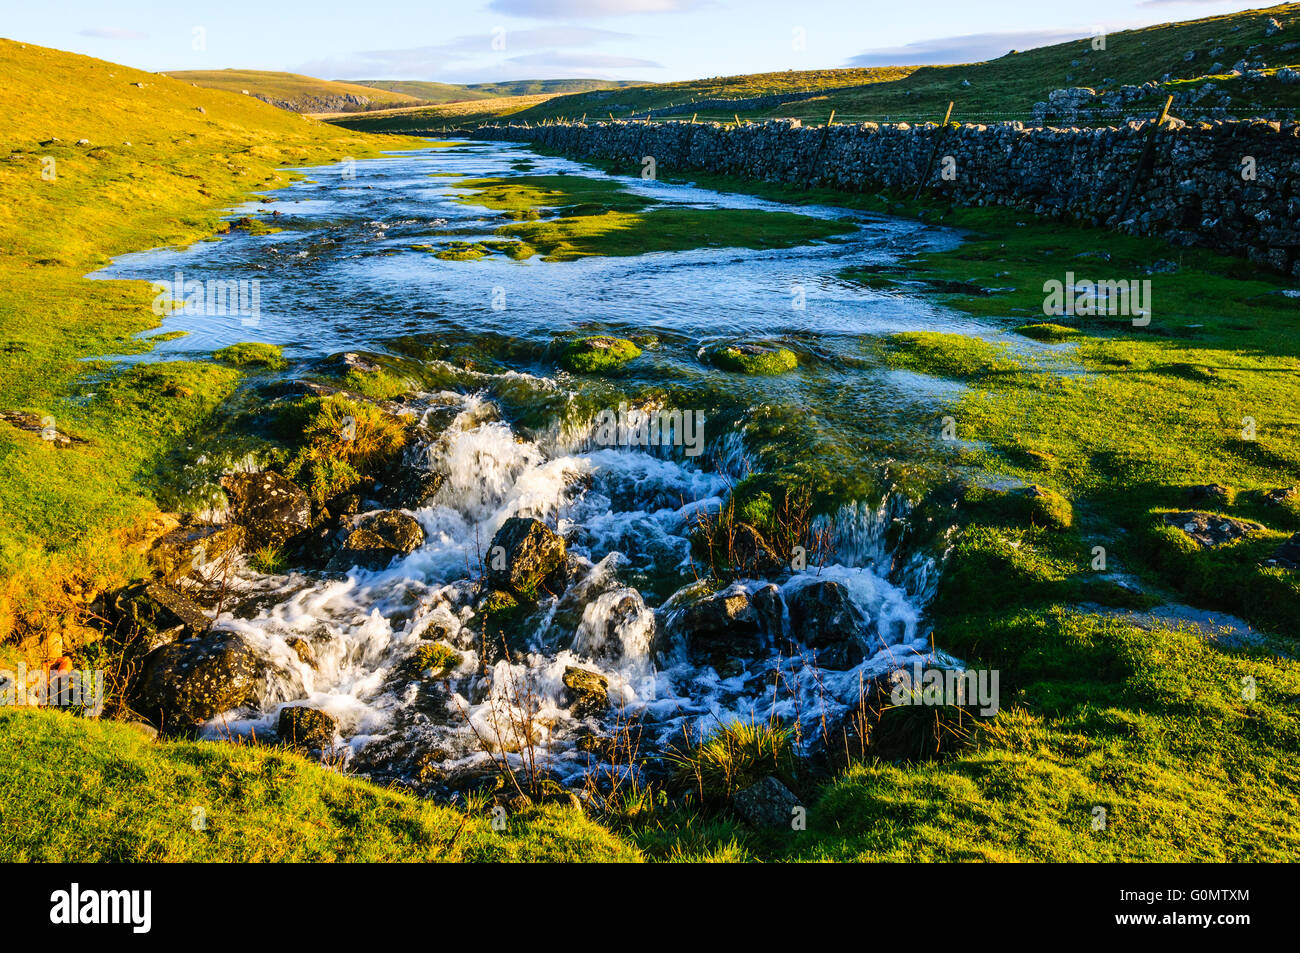 Stream disappears underground at Water Sinks near Malham Tarn on the Pennine Way in the Yorkshire Dales National - Stock Image